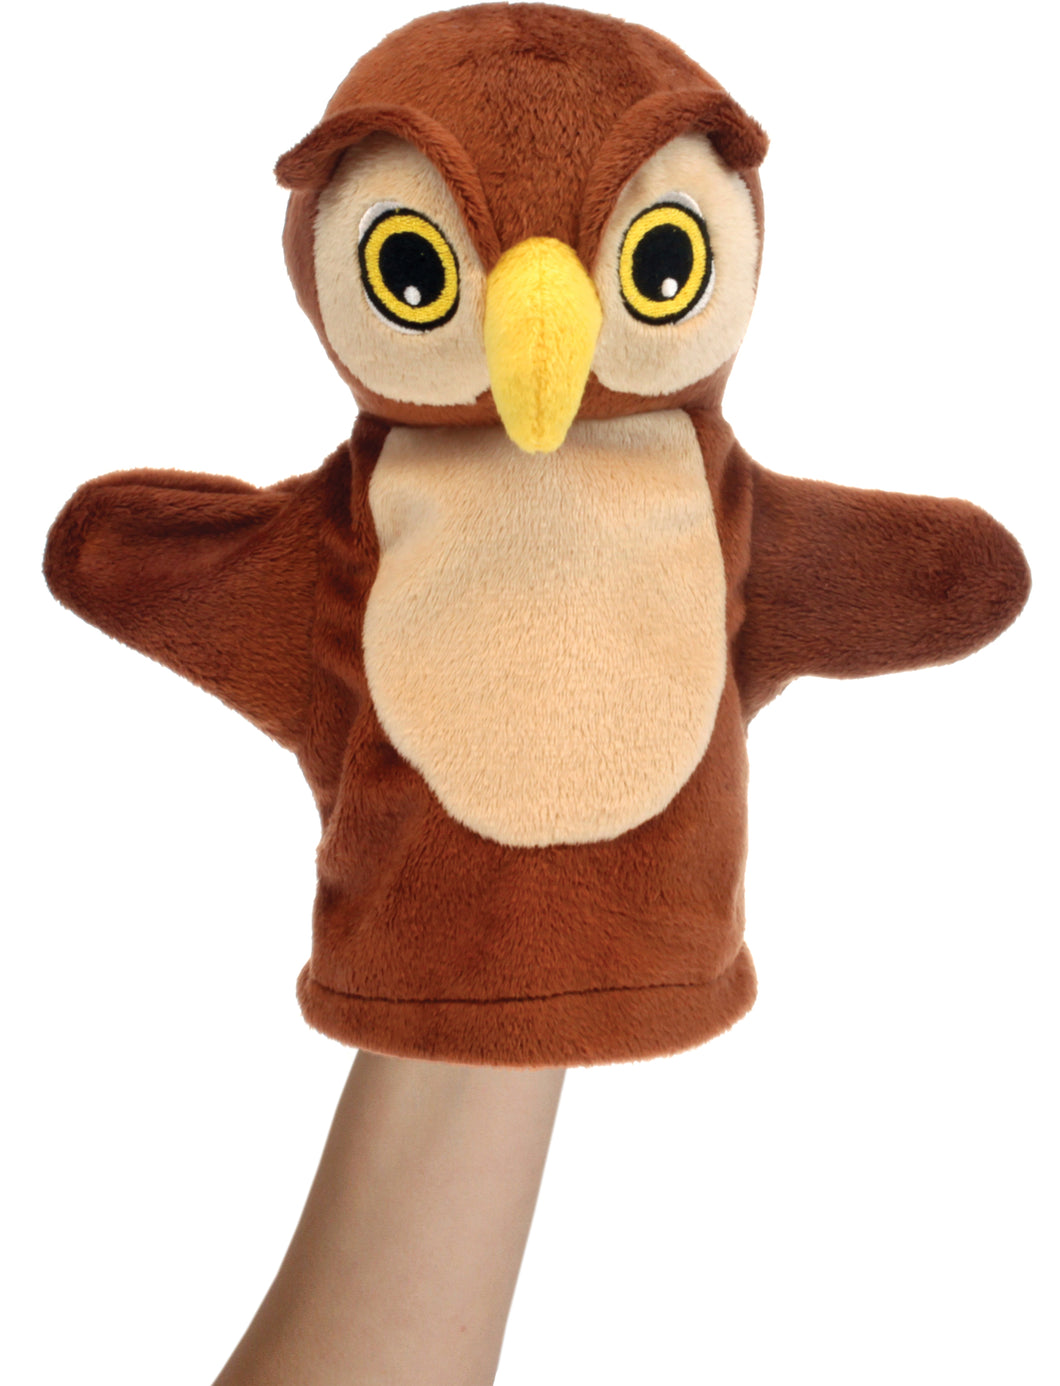 P423-PC003817-marionnette-Hibou-The-Puppet-Company-My-First-Puppets